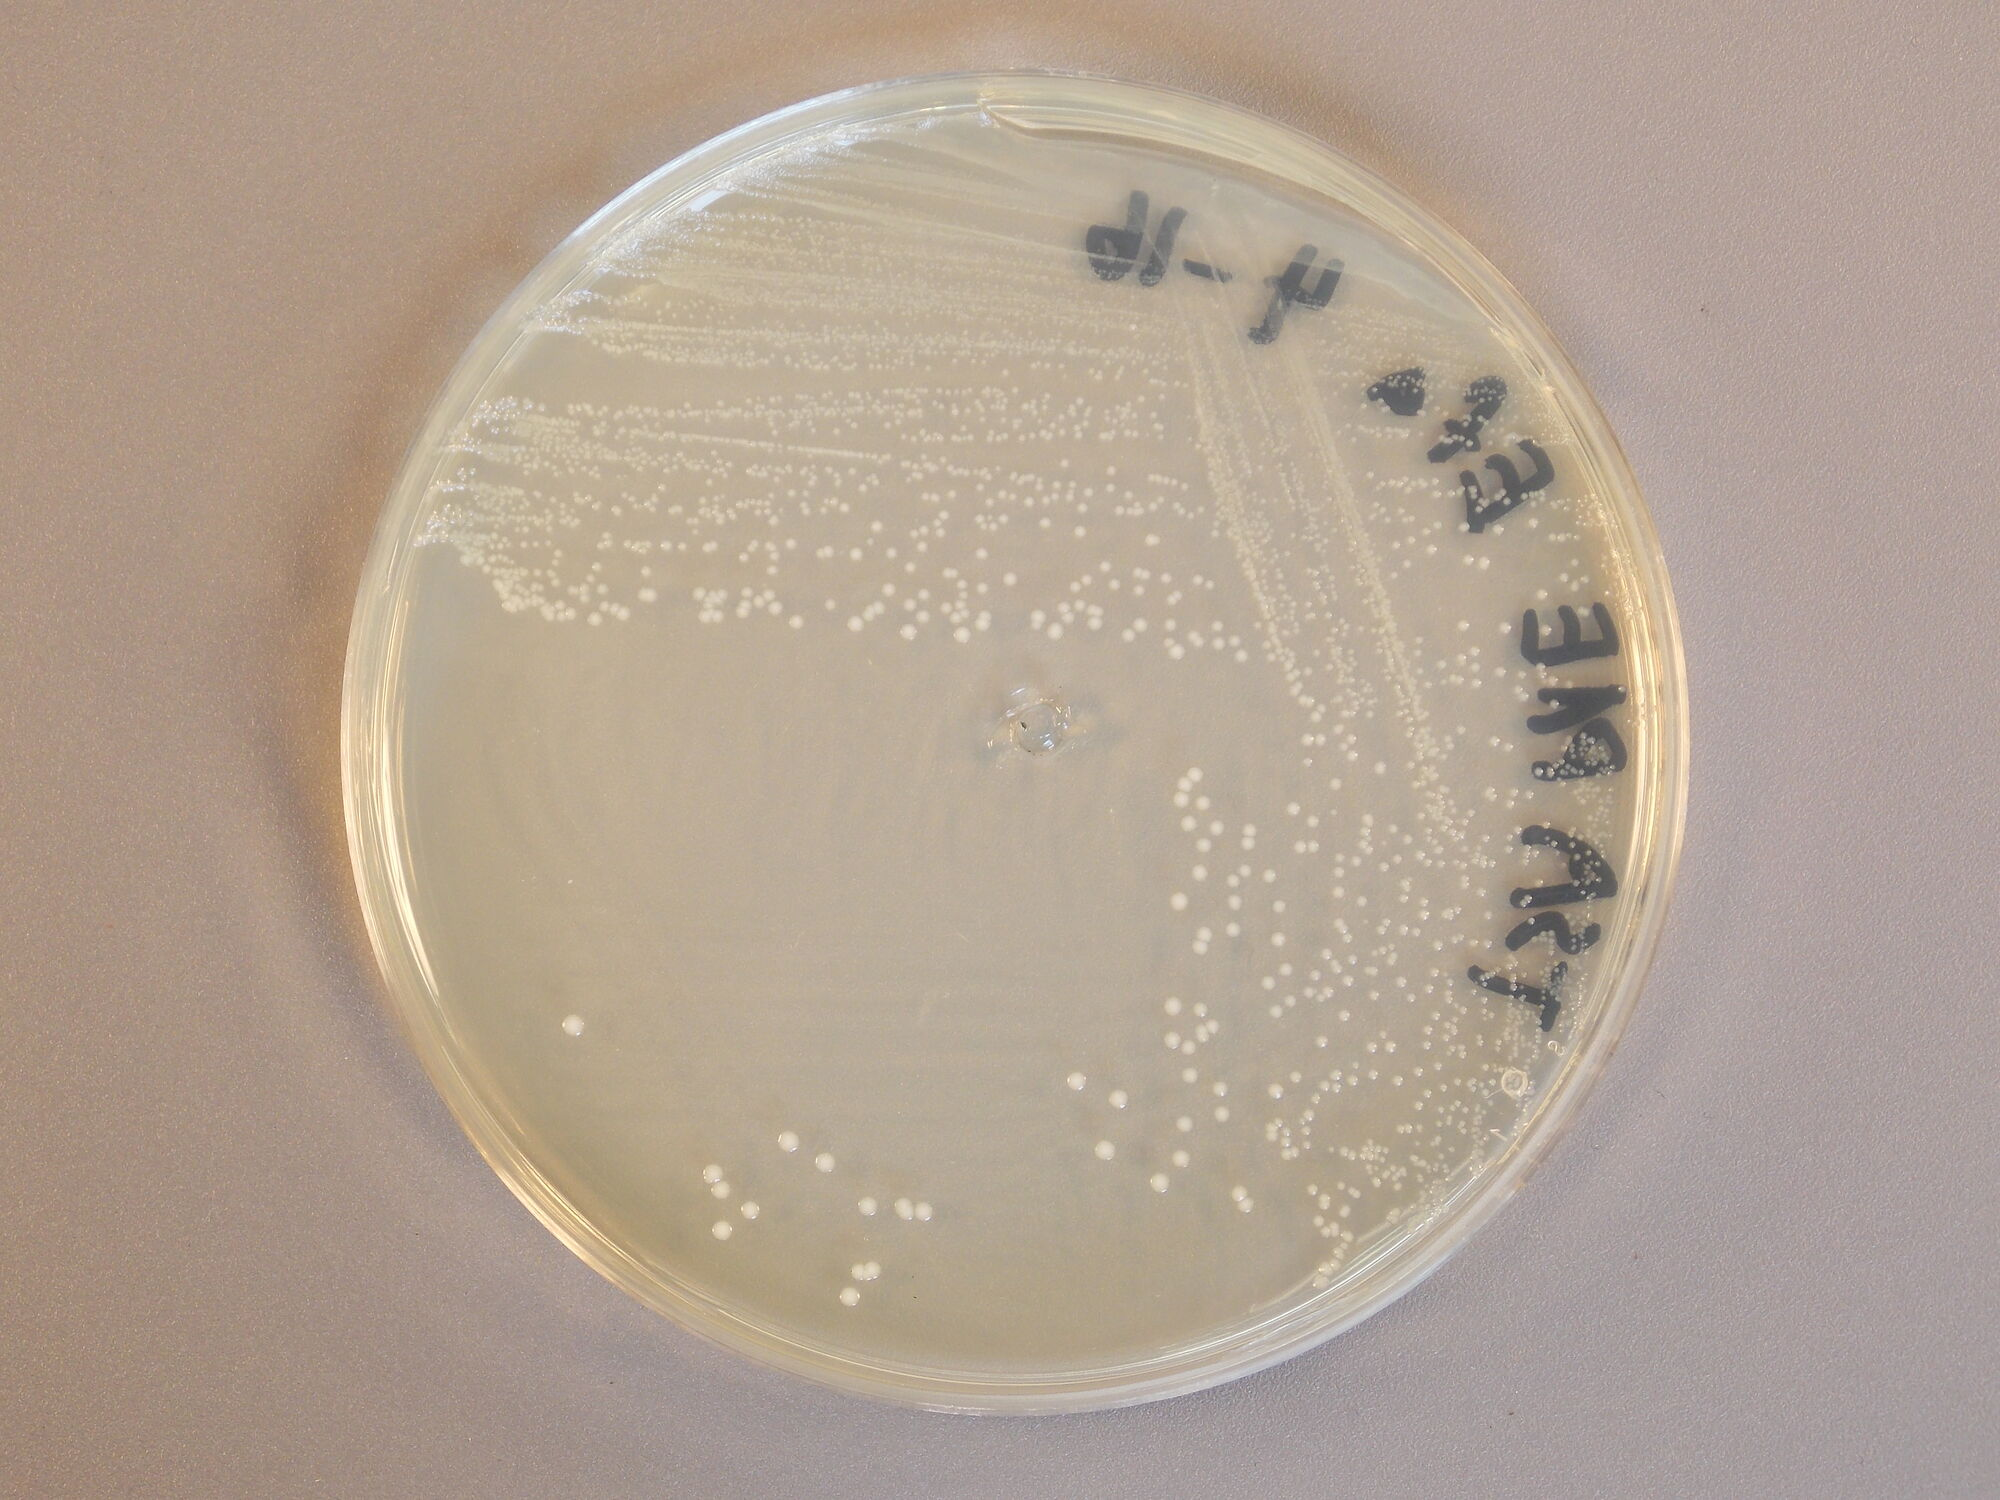 identifying unknown bacteria e faecalis The goal of this report is to identify two unknown bacteria using a series of tests while eliminating unlikely choices enterococcus faecalis mannitol(positive.